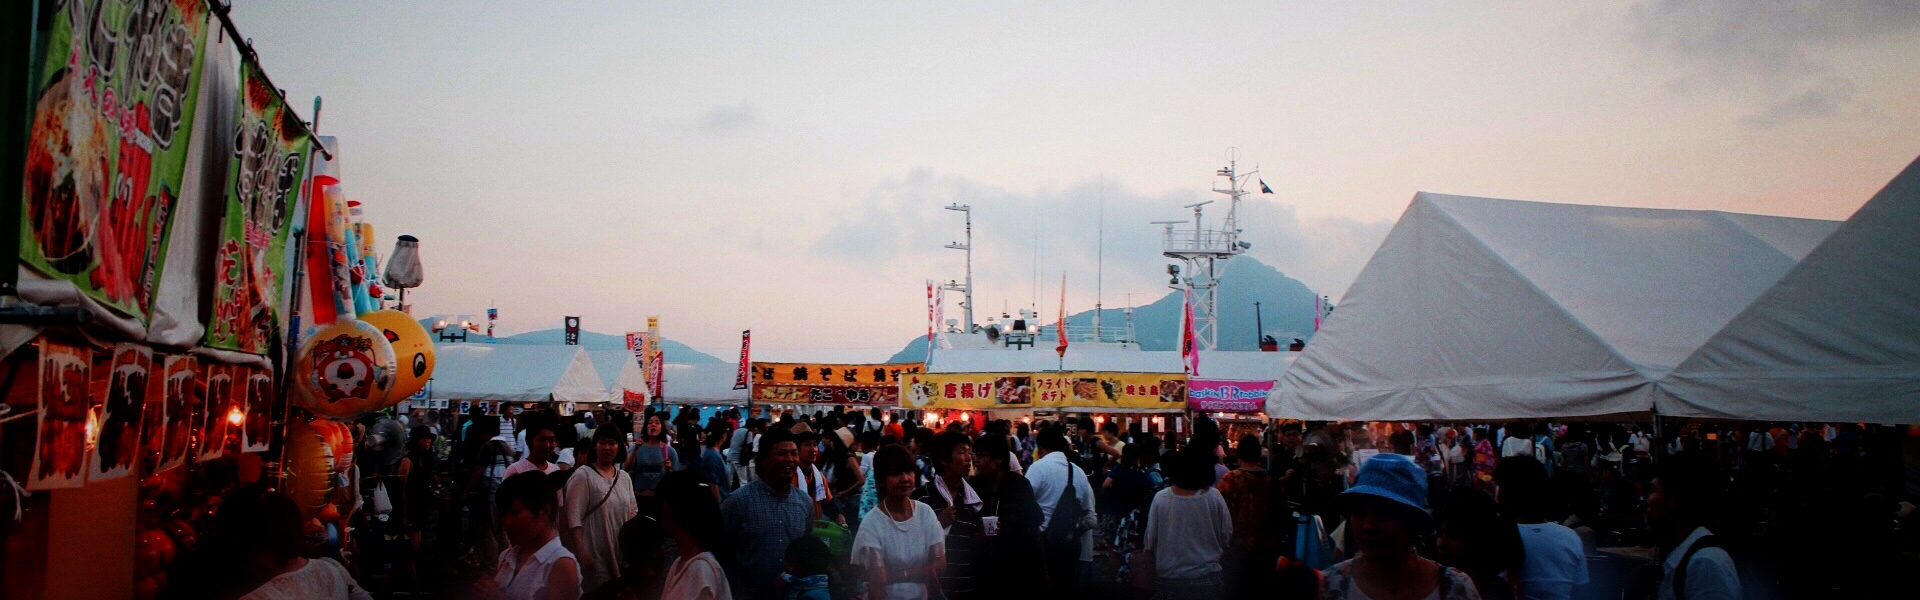 SASEBO SEASIDE FESTIVAL 2019